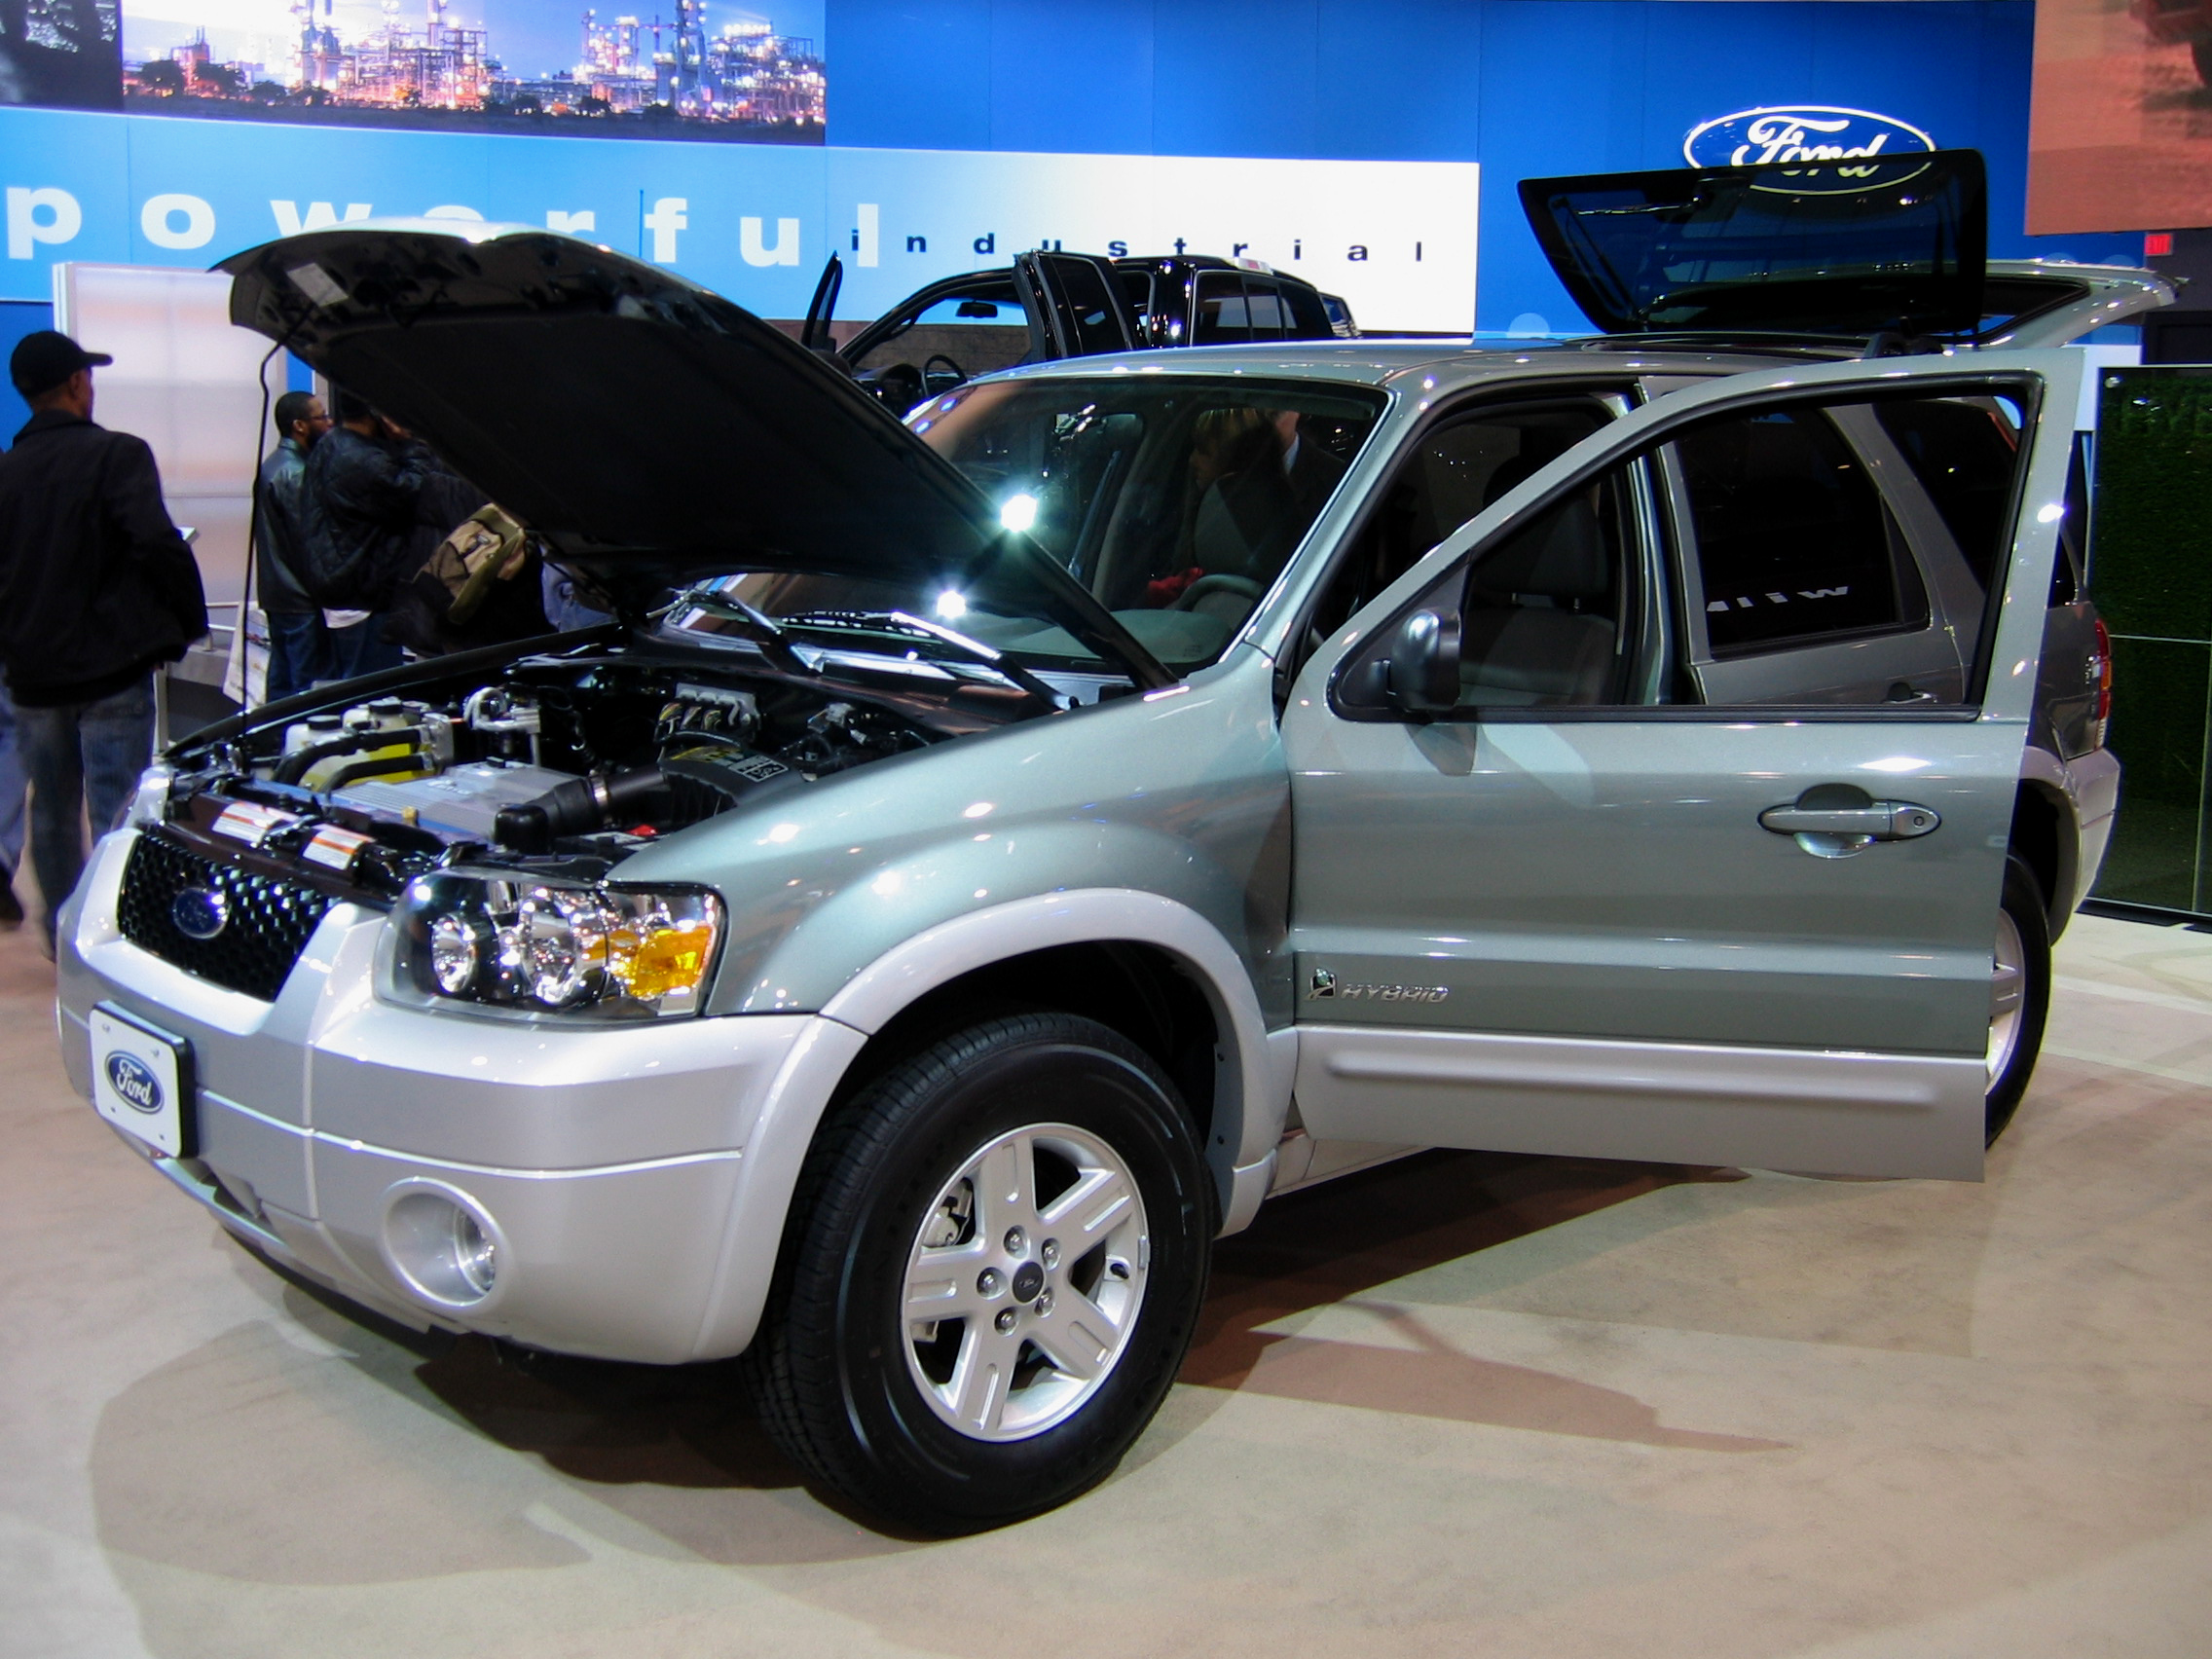 File:Ford escape hybrid.jpg - Wikipedia, the free encyclopedia